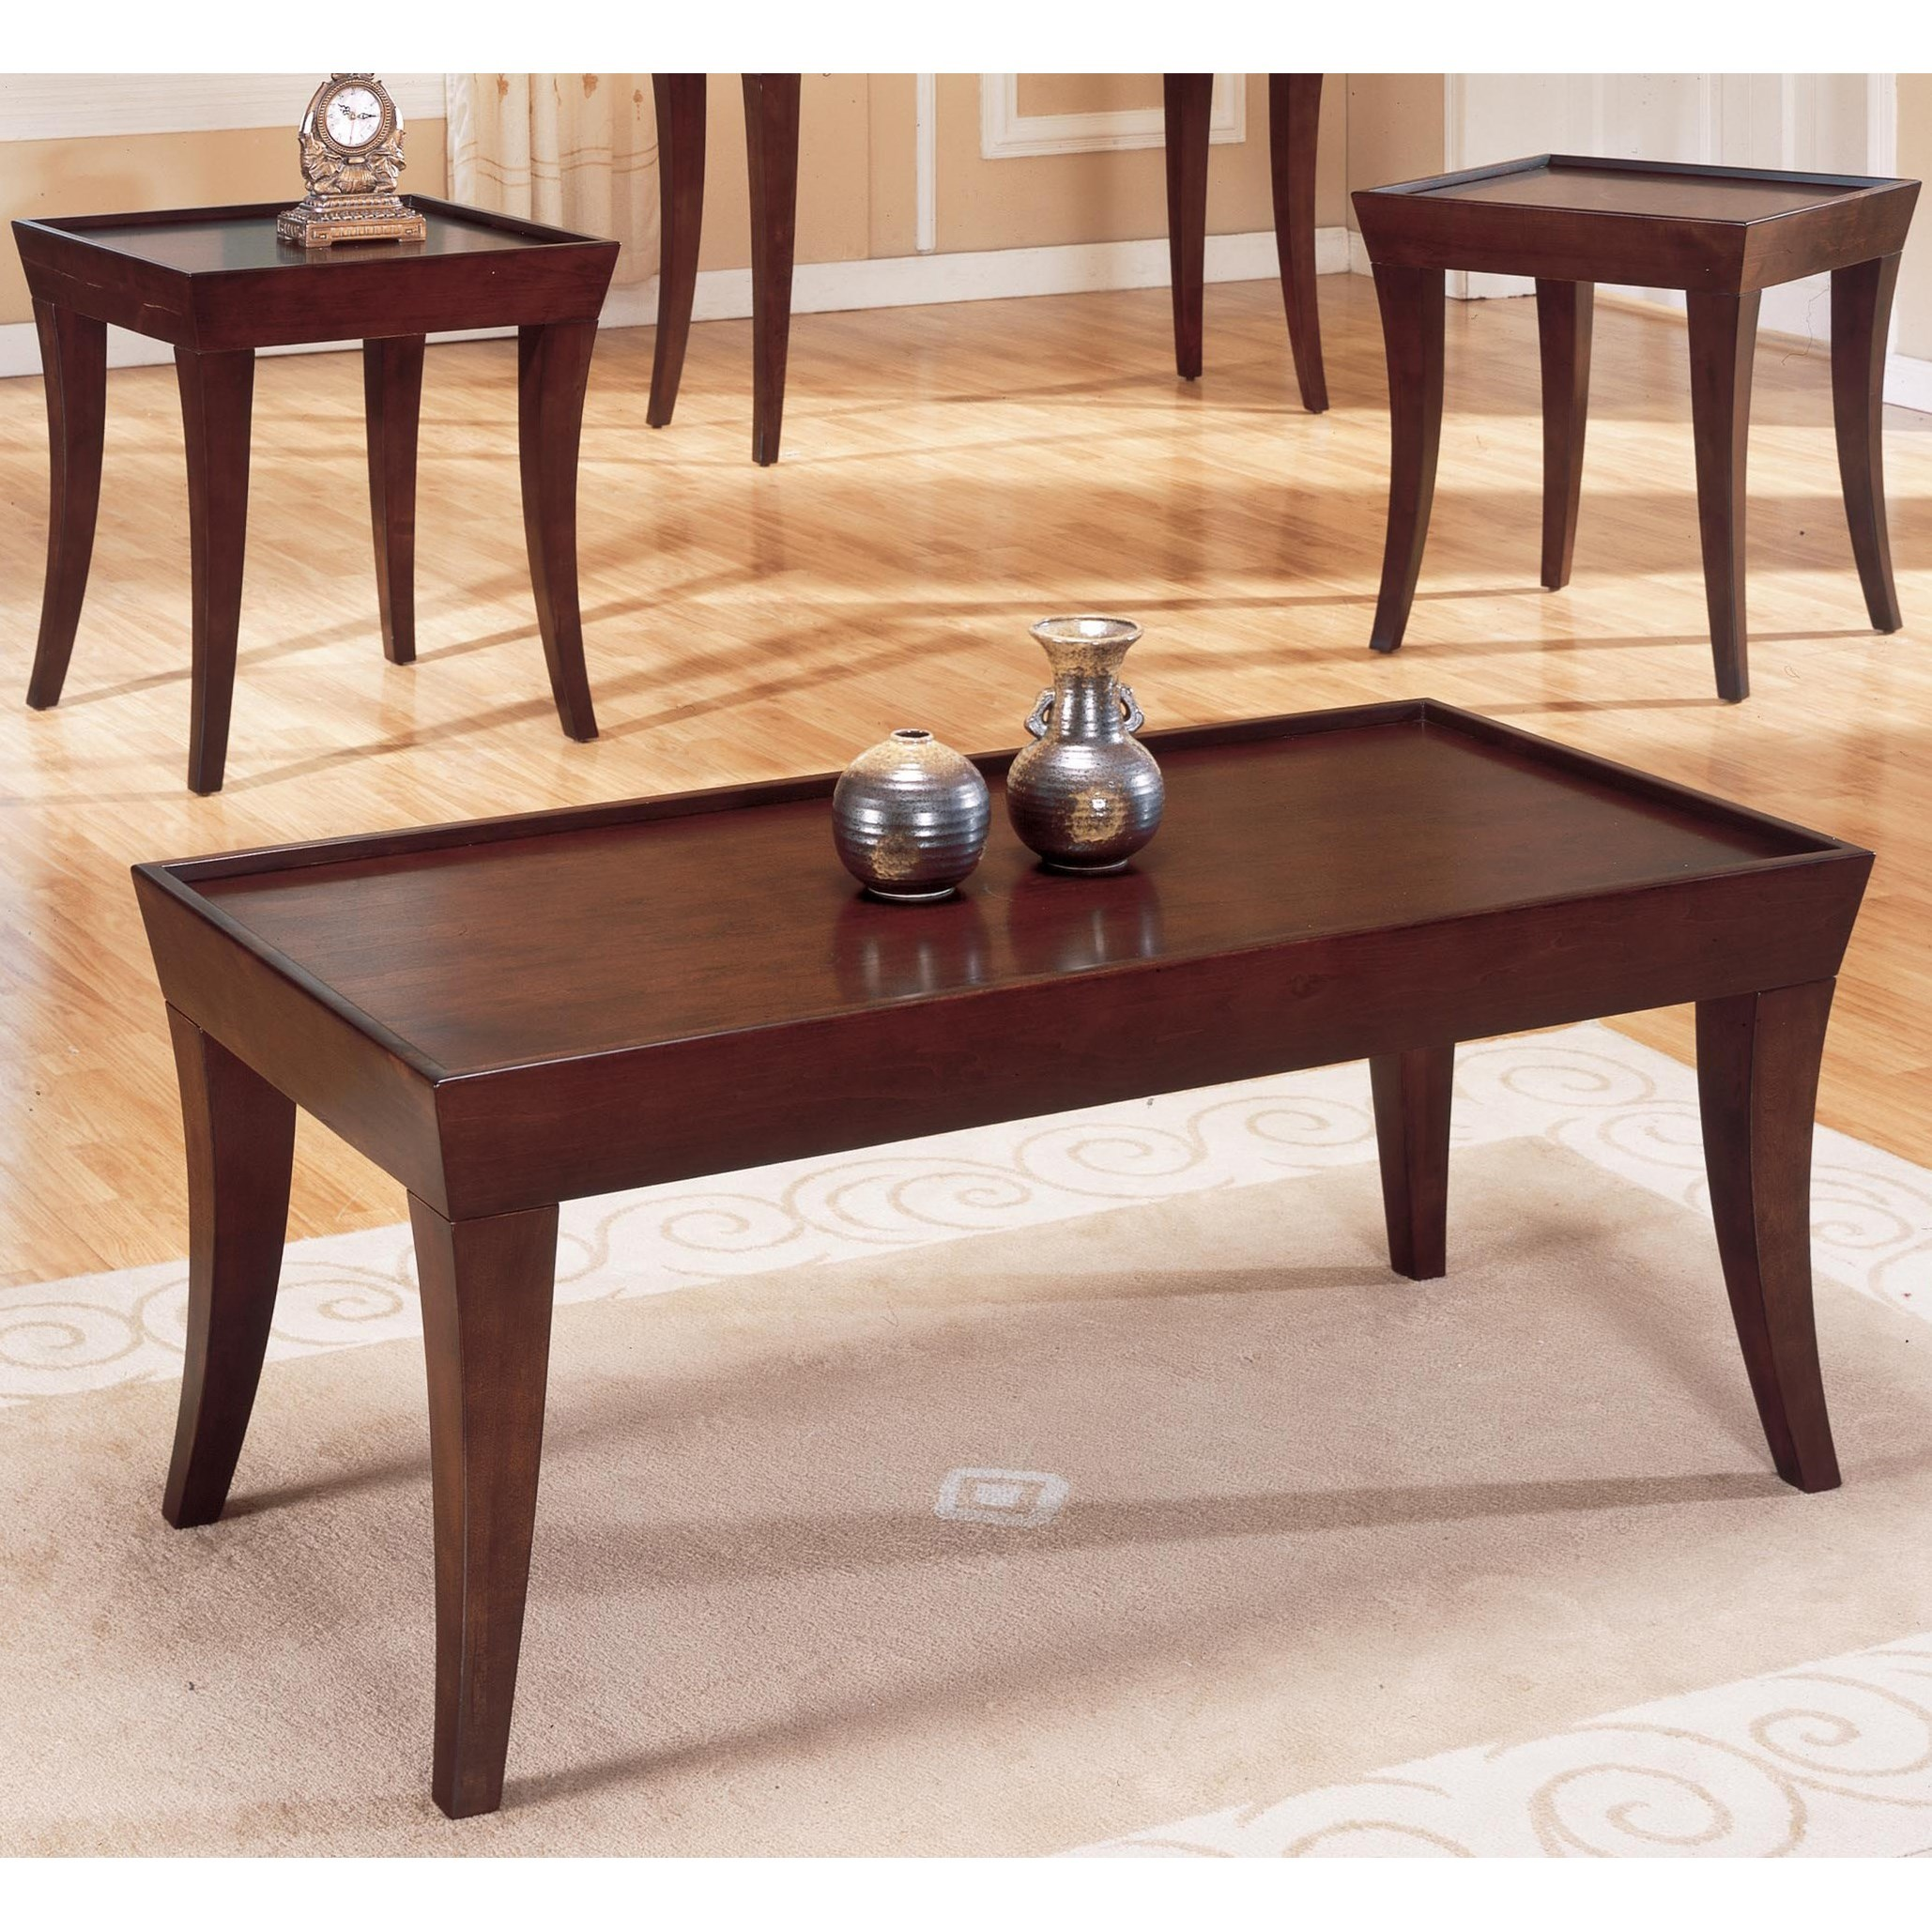 Zen Casual Occasional Table Group by Homelegance at Rooms for Less